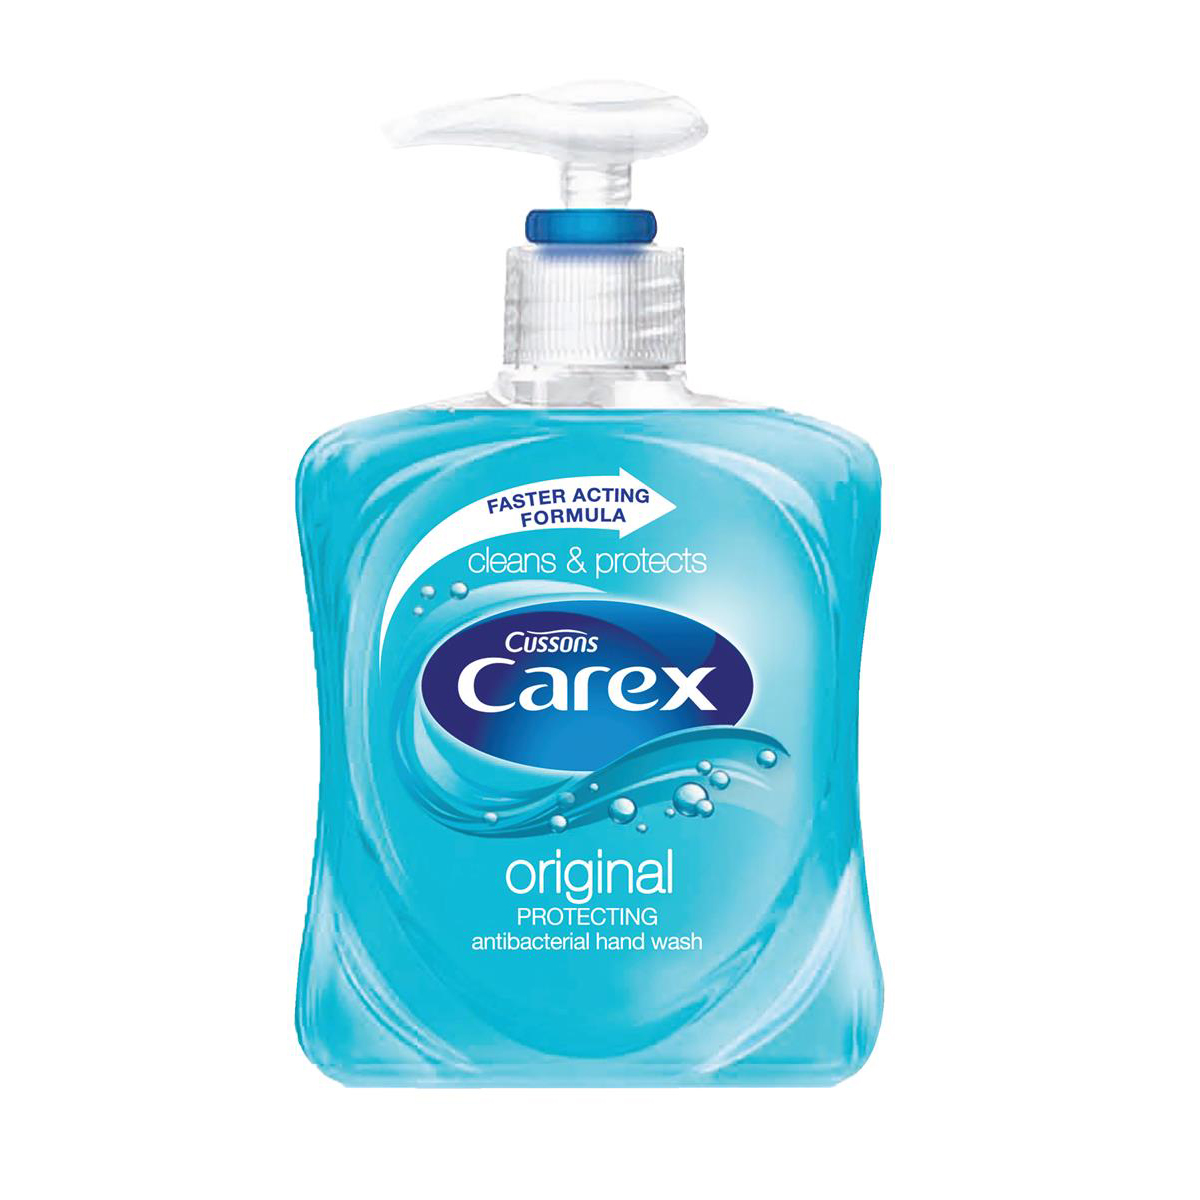 Carex Liquid Soap Hand Wash 500ml Ref 347899